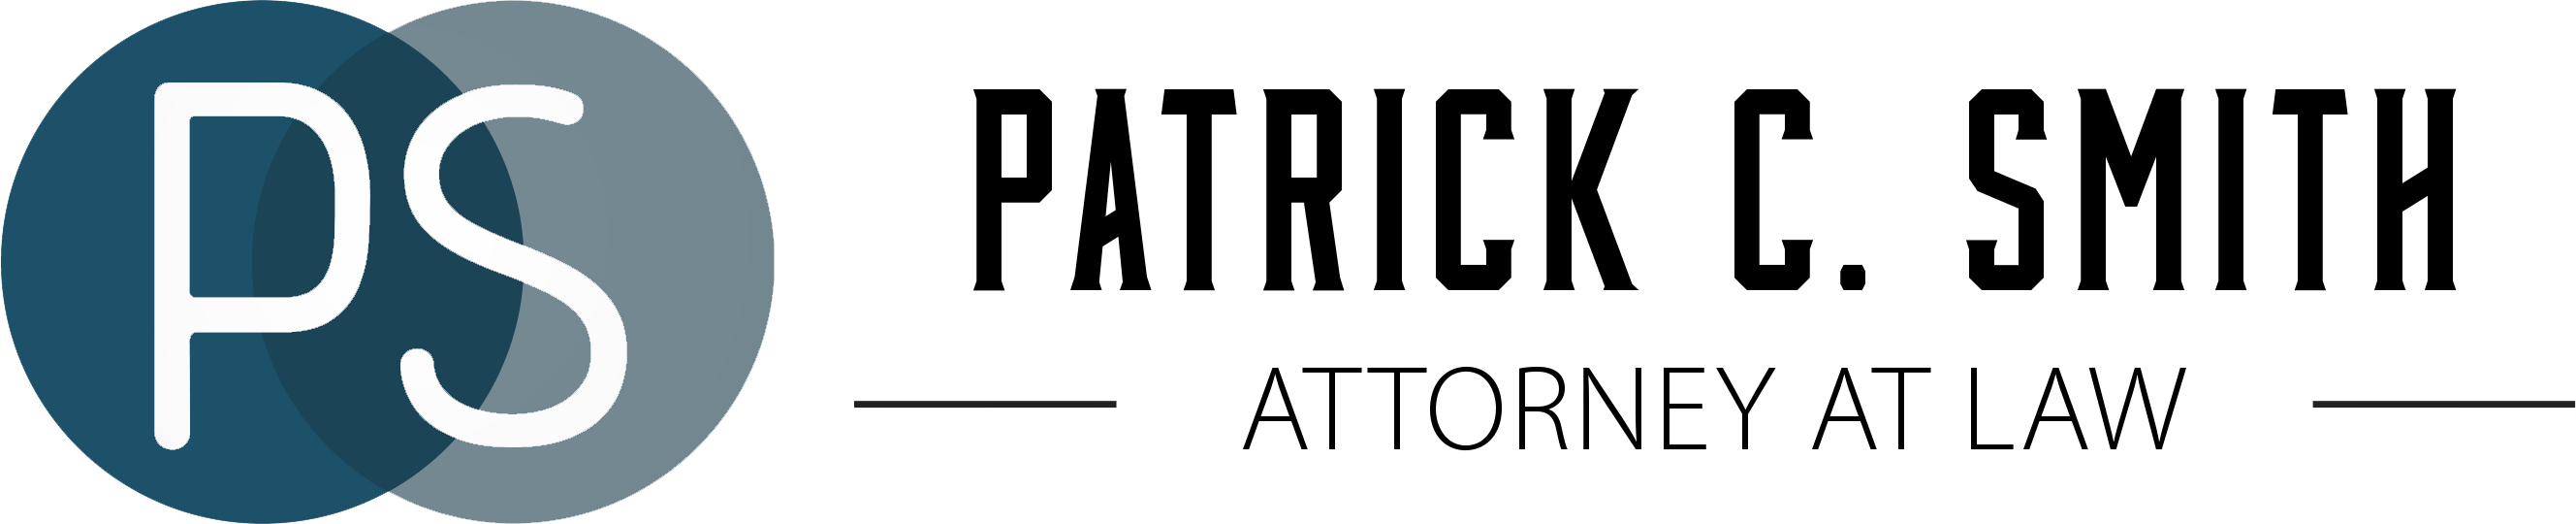 Patrick C. Smith, Attorney at Law logo